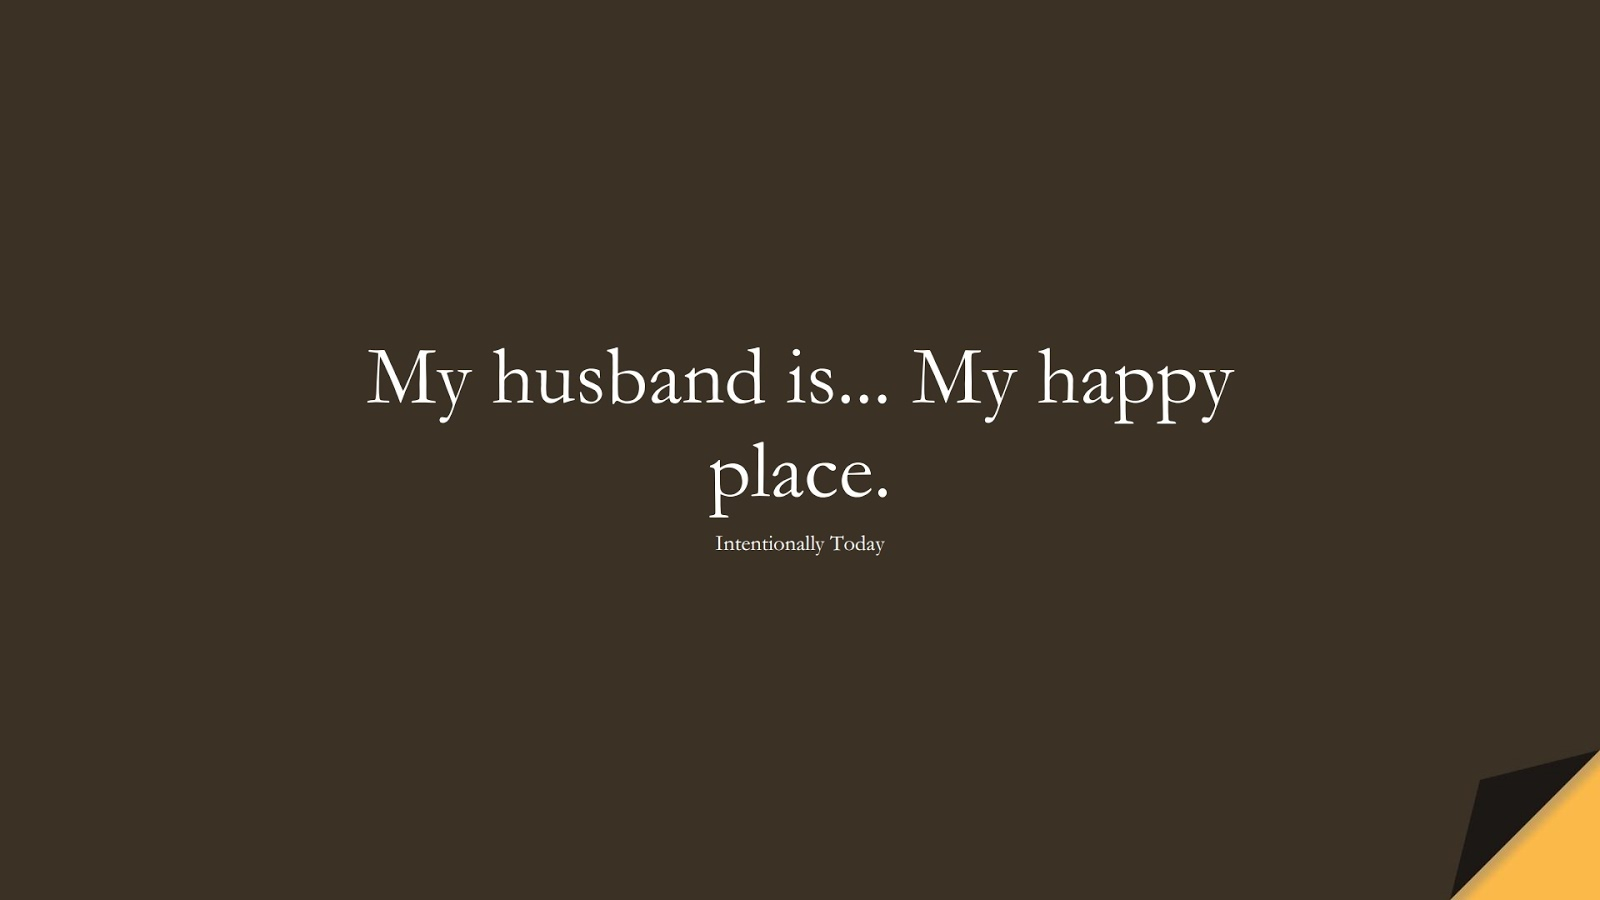 My husband is... My happy place. (Intentionally Today);  #LoveQuotes